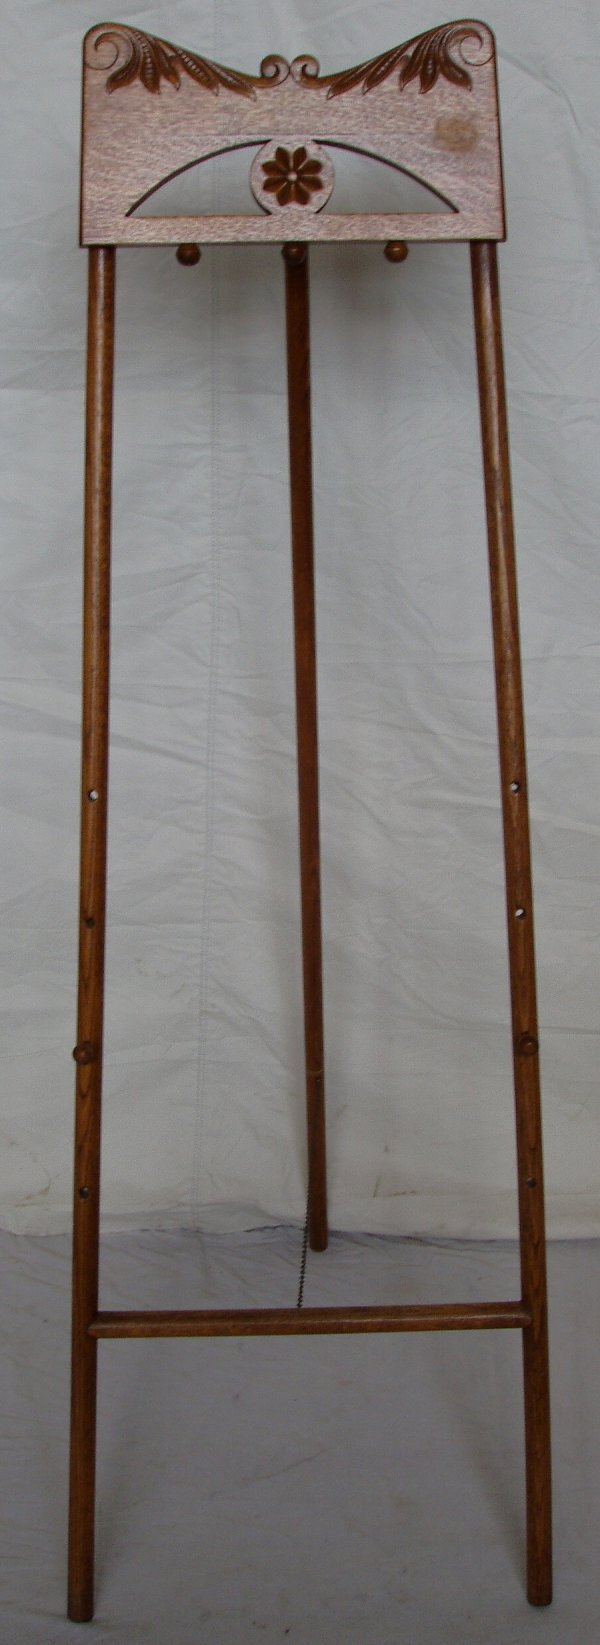 216: Carved Oak Easel w/Pegs for Painting Sizes